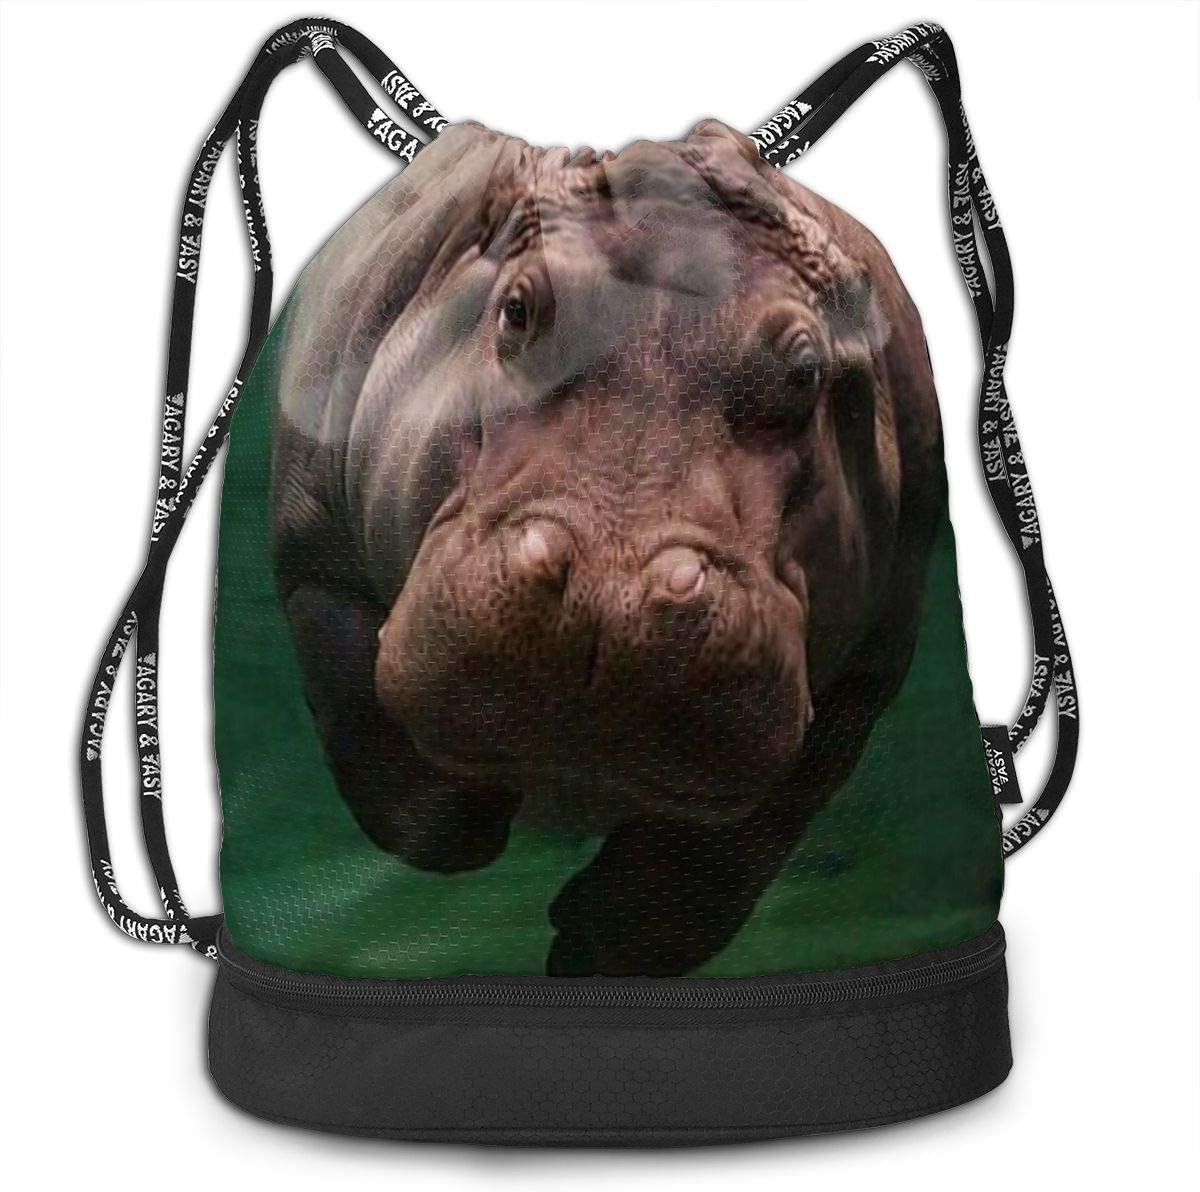 Max 45% OFF Diving Hippo Drawstring Bag Sport Gym Be Large Sackpack Capacity Cheap mail order sales